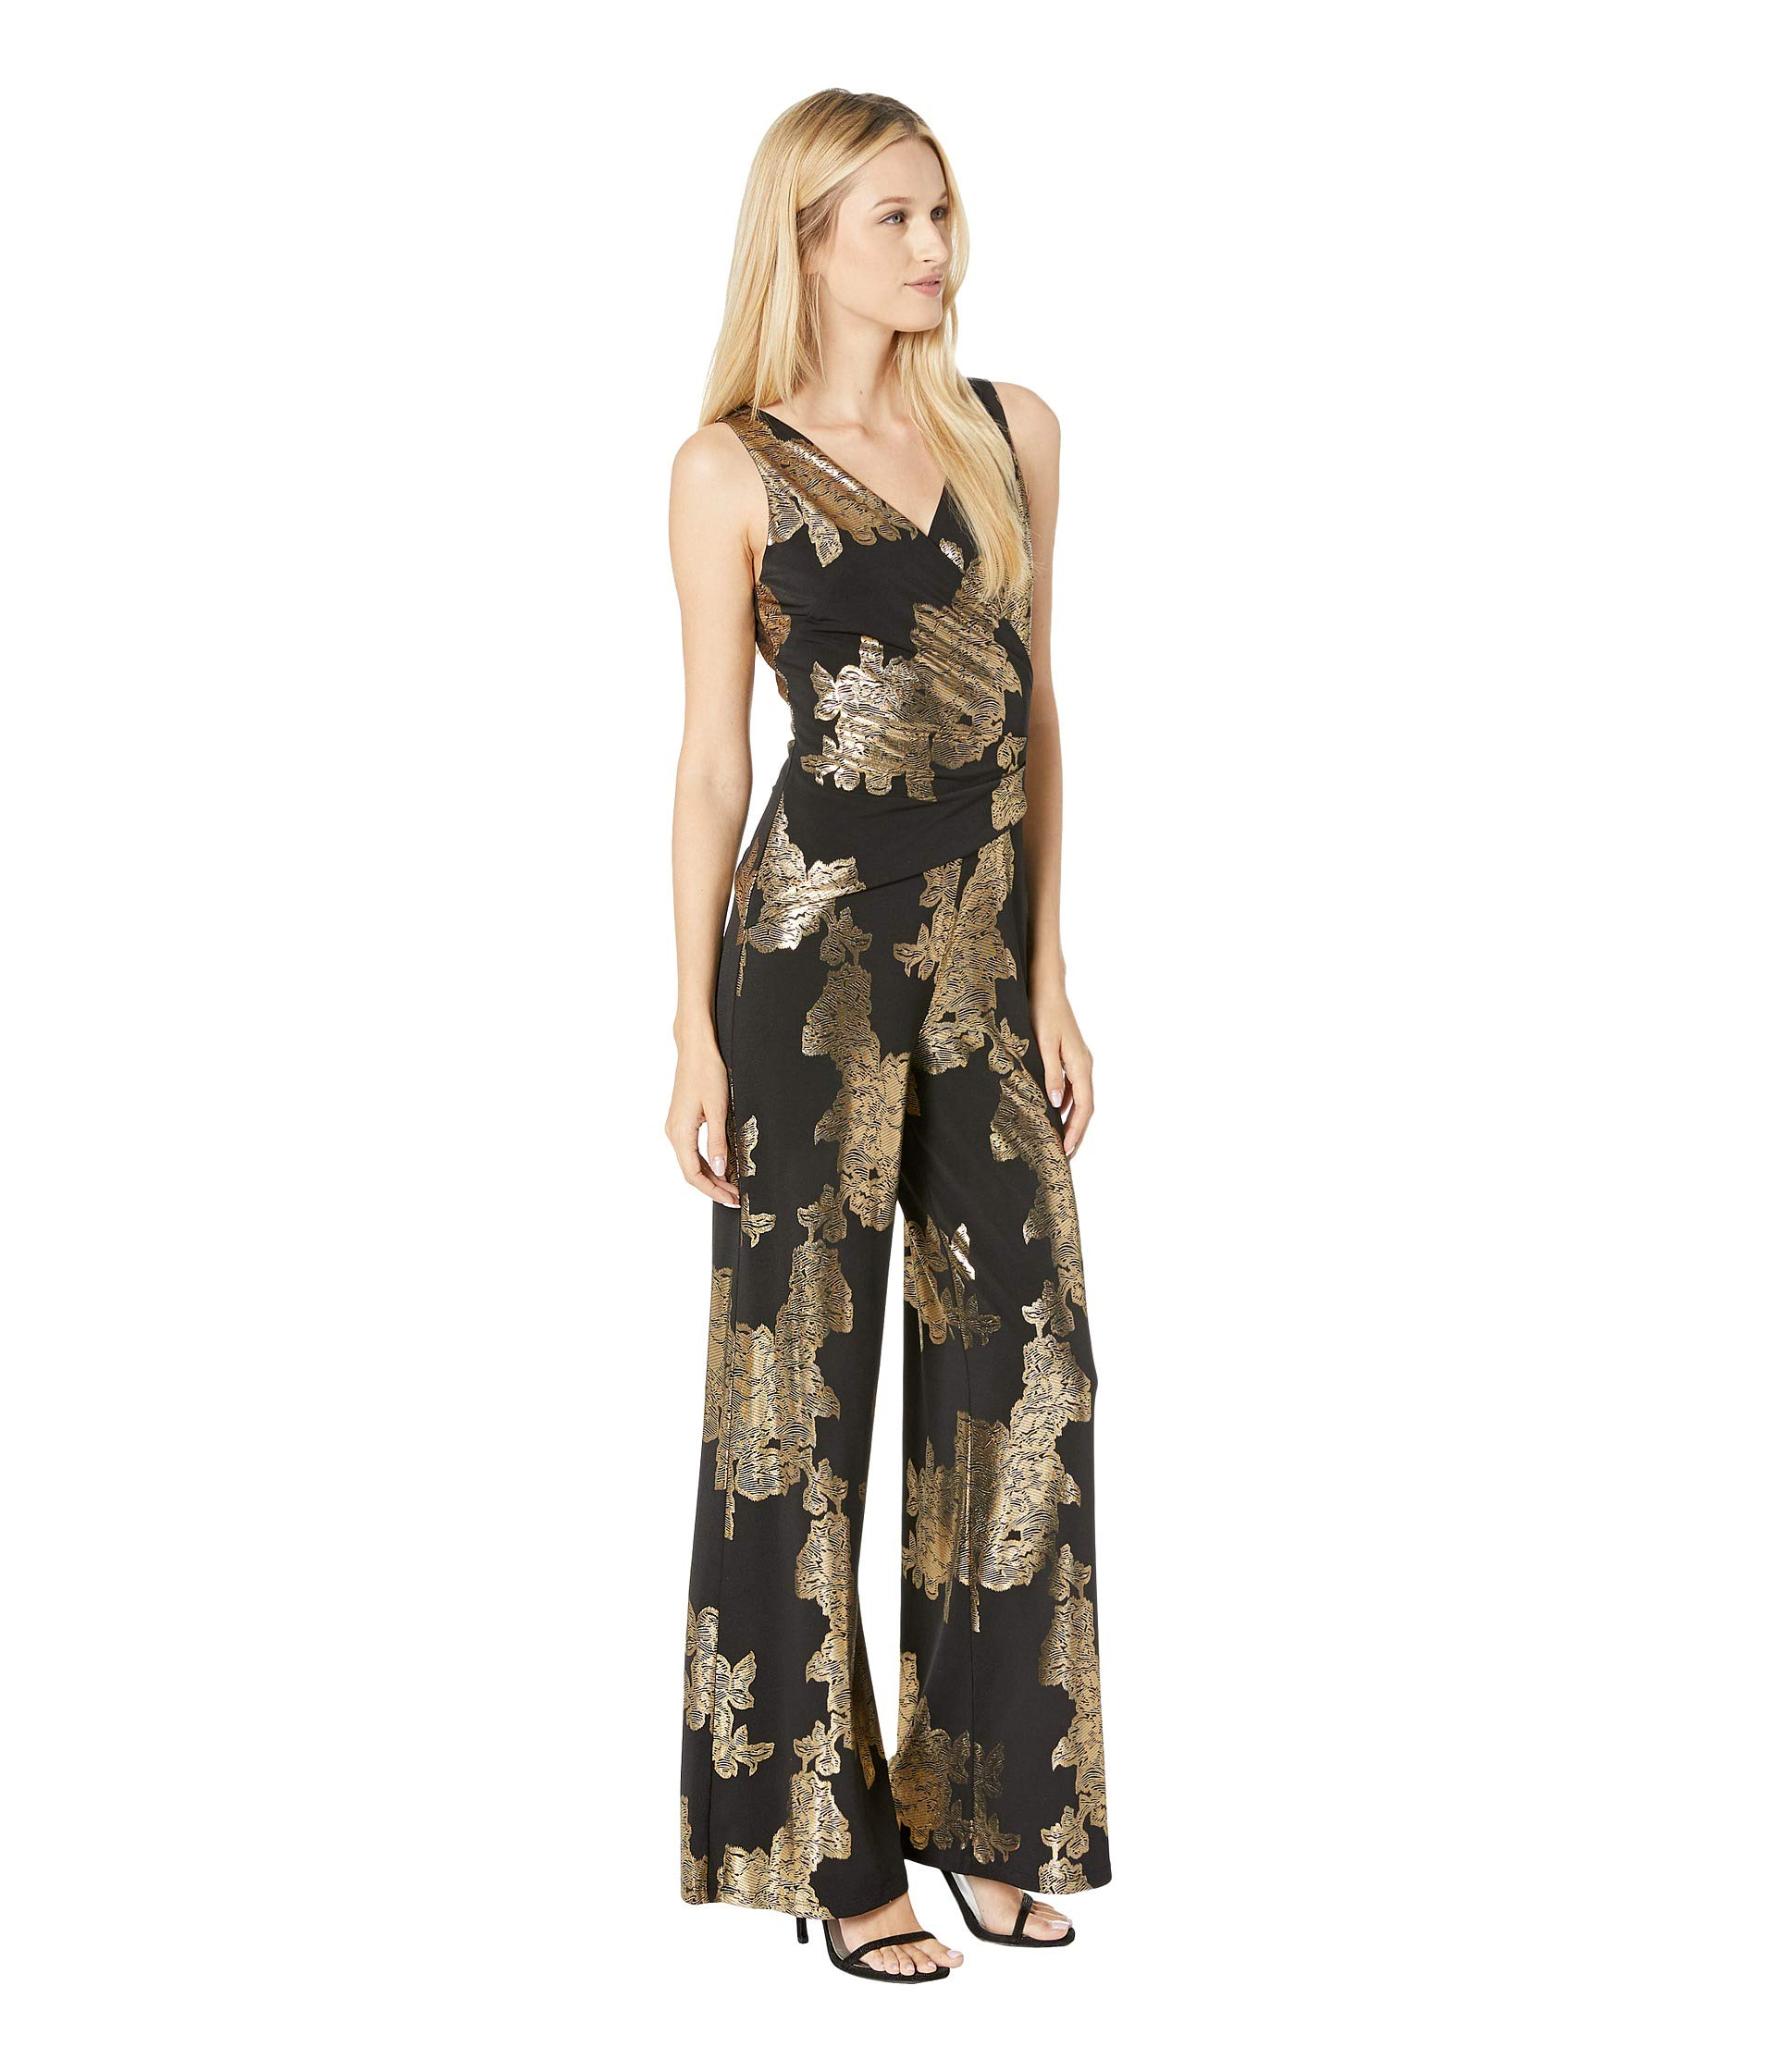 Rose Nine Surplus Black Printed W West amp; Sleeveless Asymmetrical gold Foil Jumpsuit Ity Detail Bodice xCqfwC